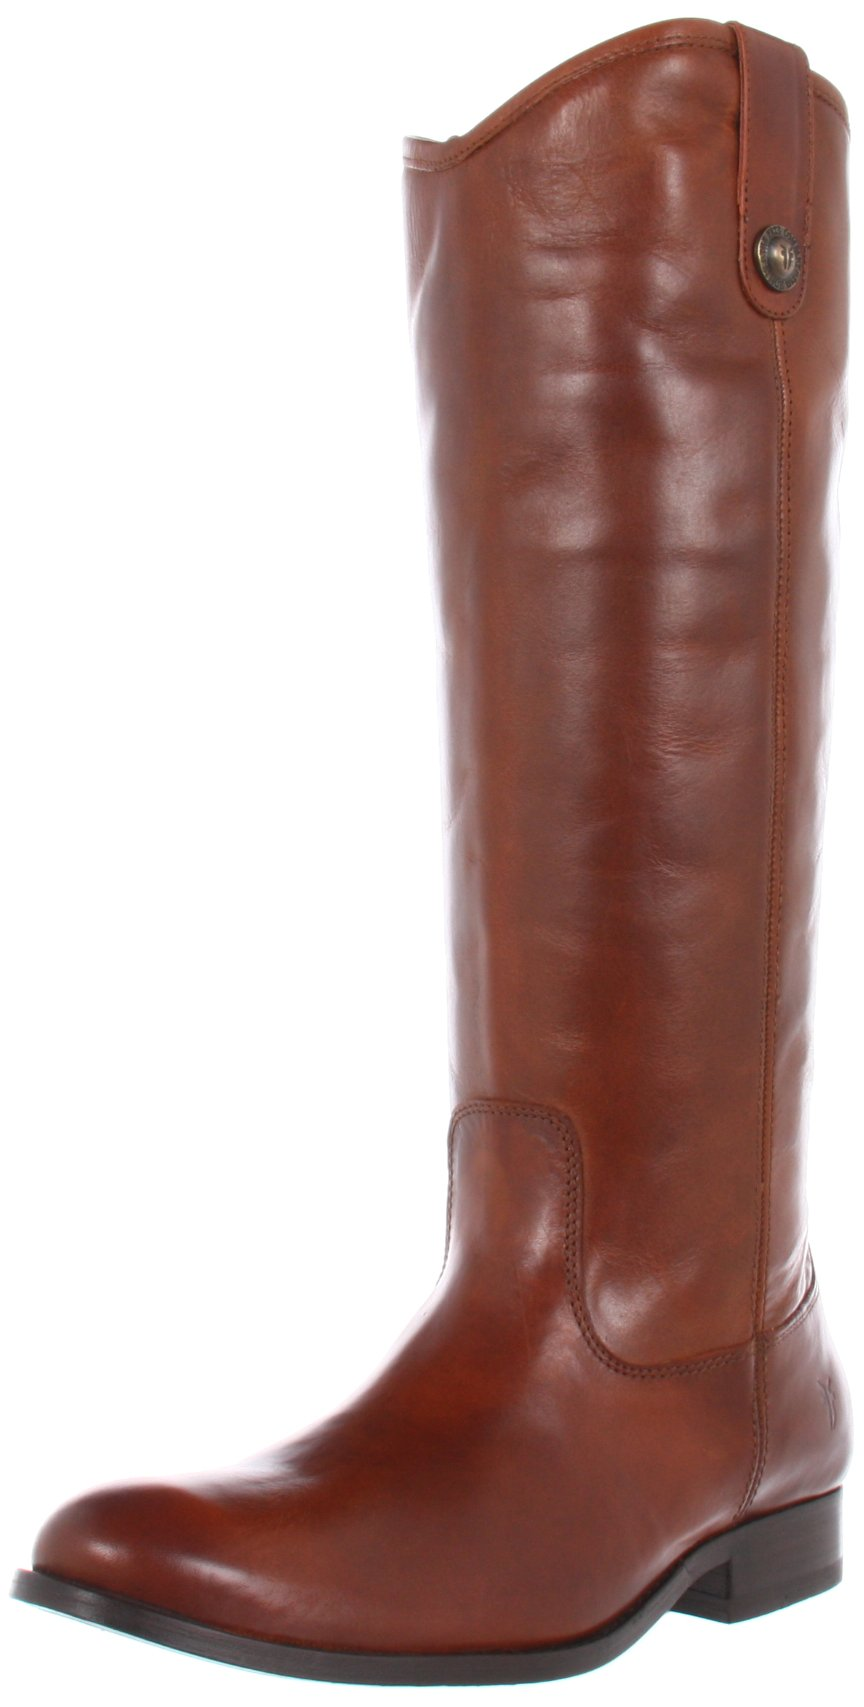 FRYE Women's Melissa Button Boot, Cognac Smooth Vintage Leather, 7.5 M US